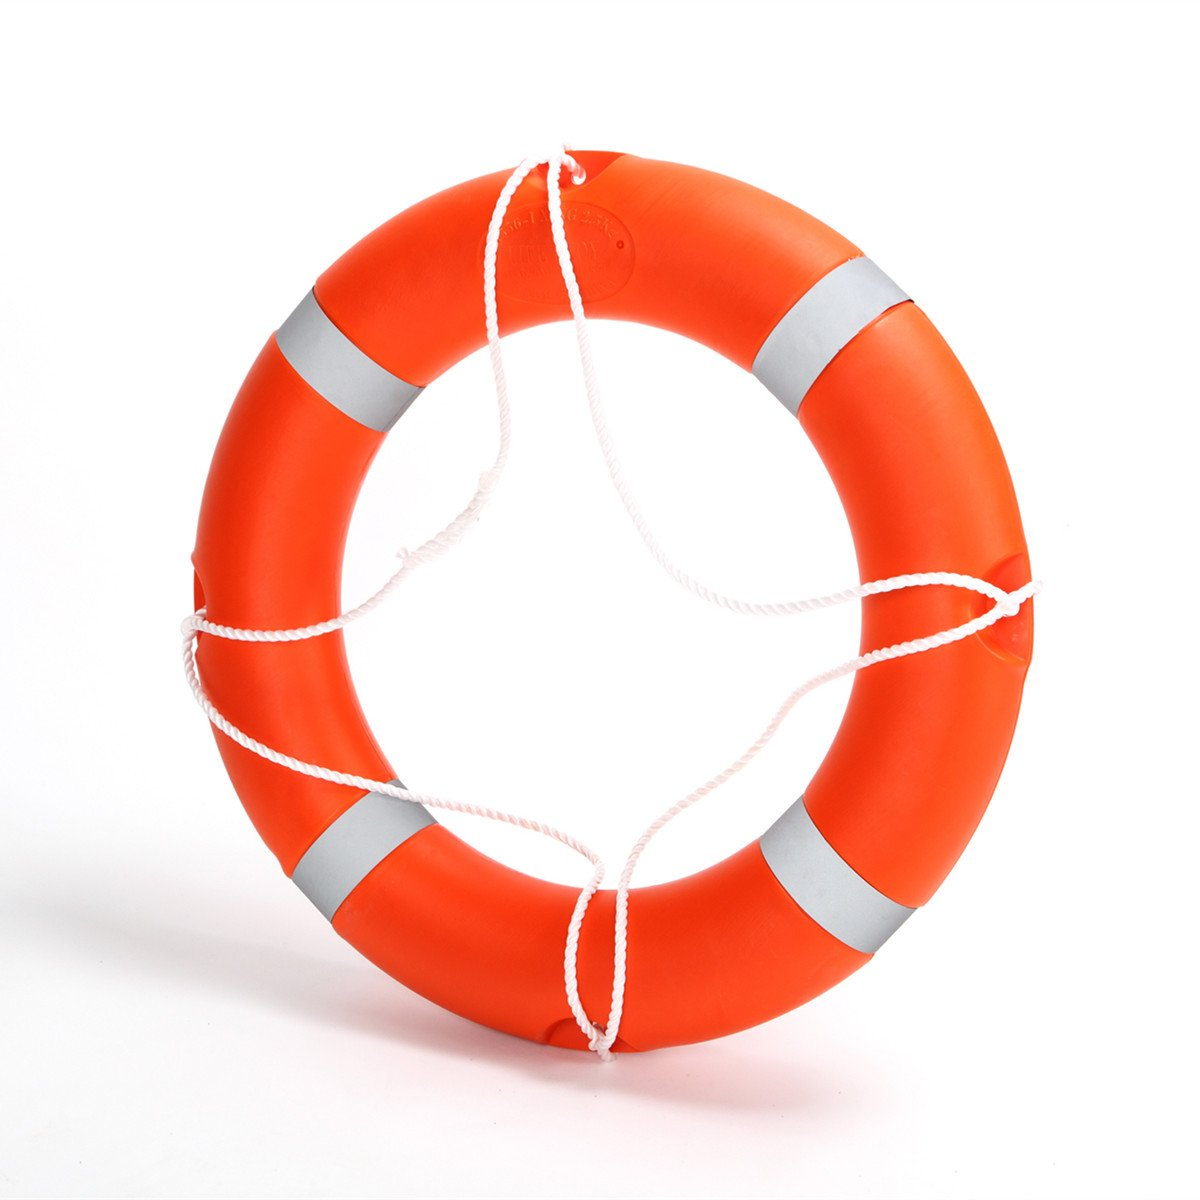 BeautySu. 28'' Diameter Professional Adult Foam Swim Ring Buoy Orange Lifering with White Bands by BeautySu.